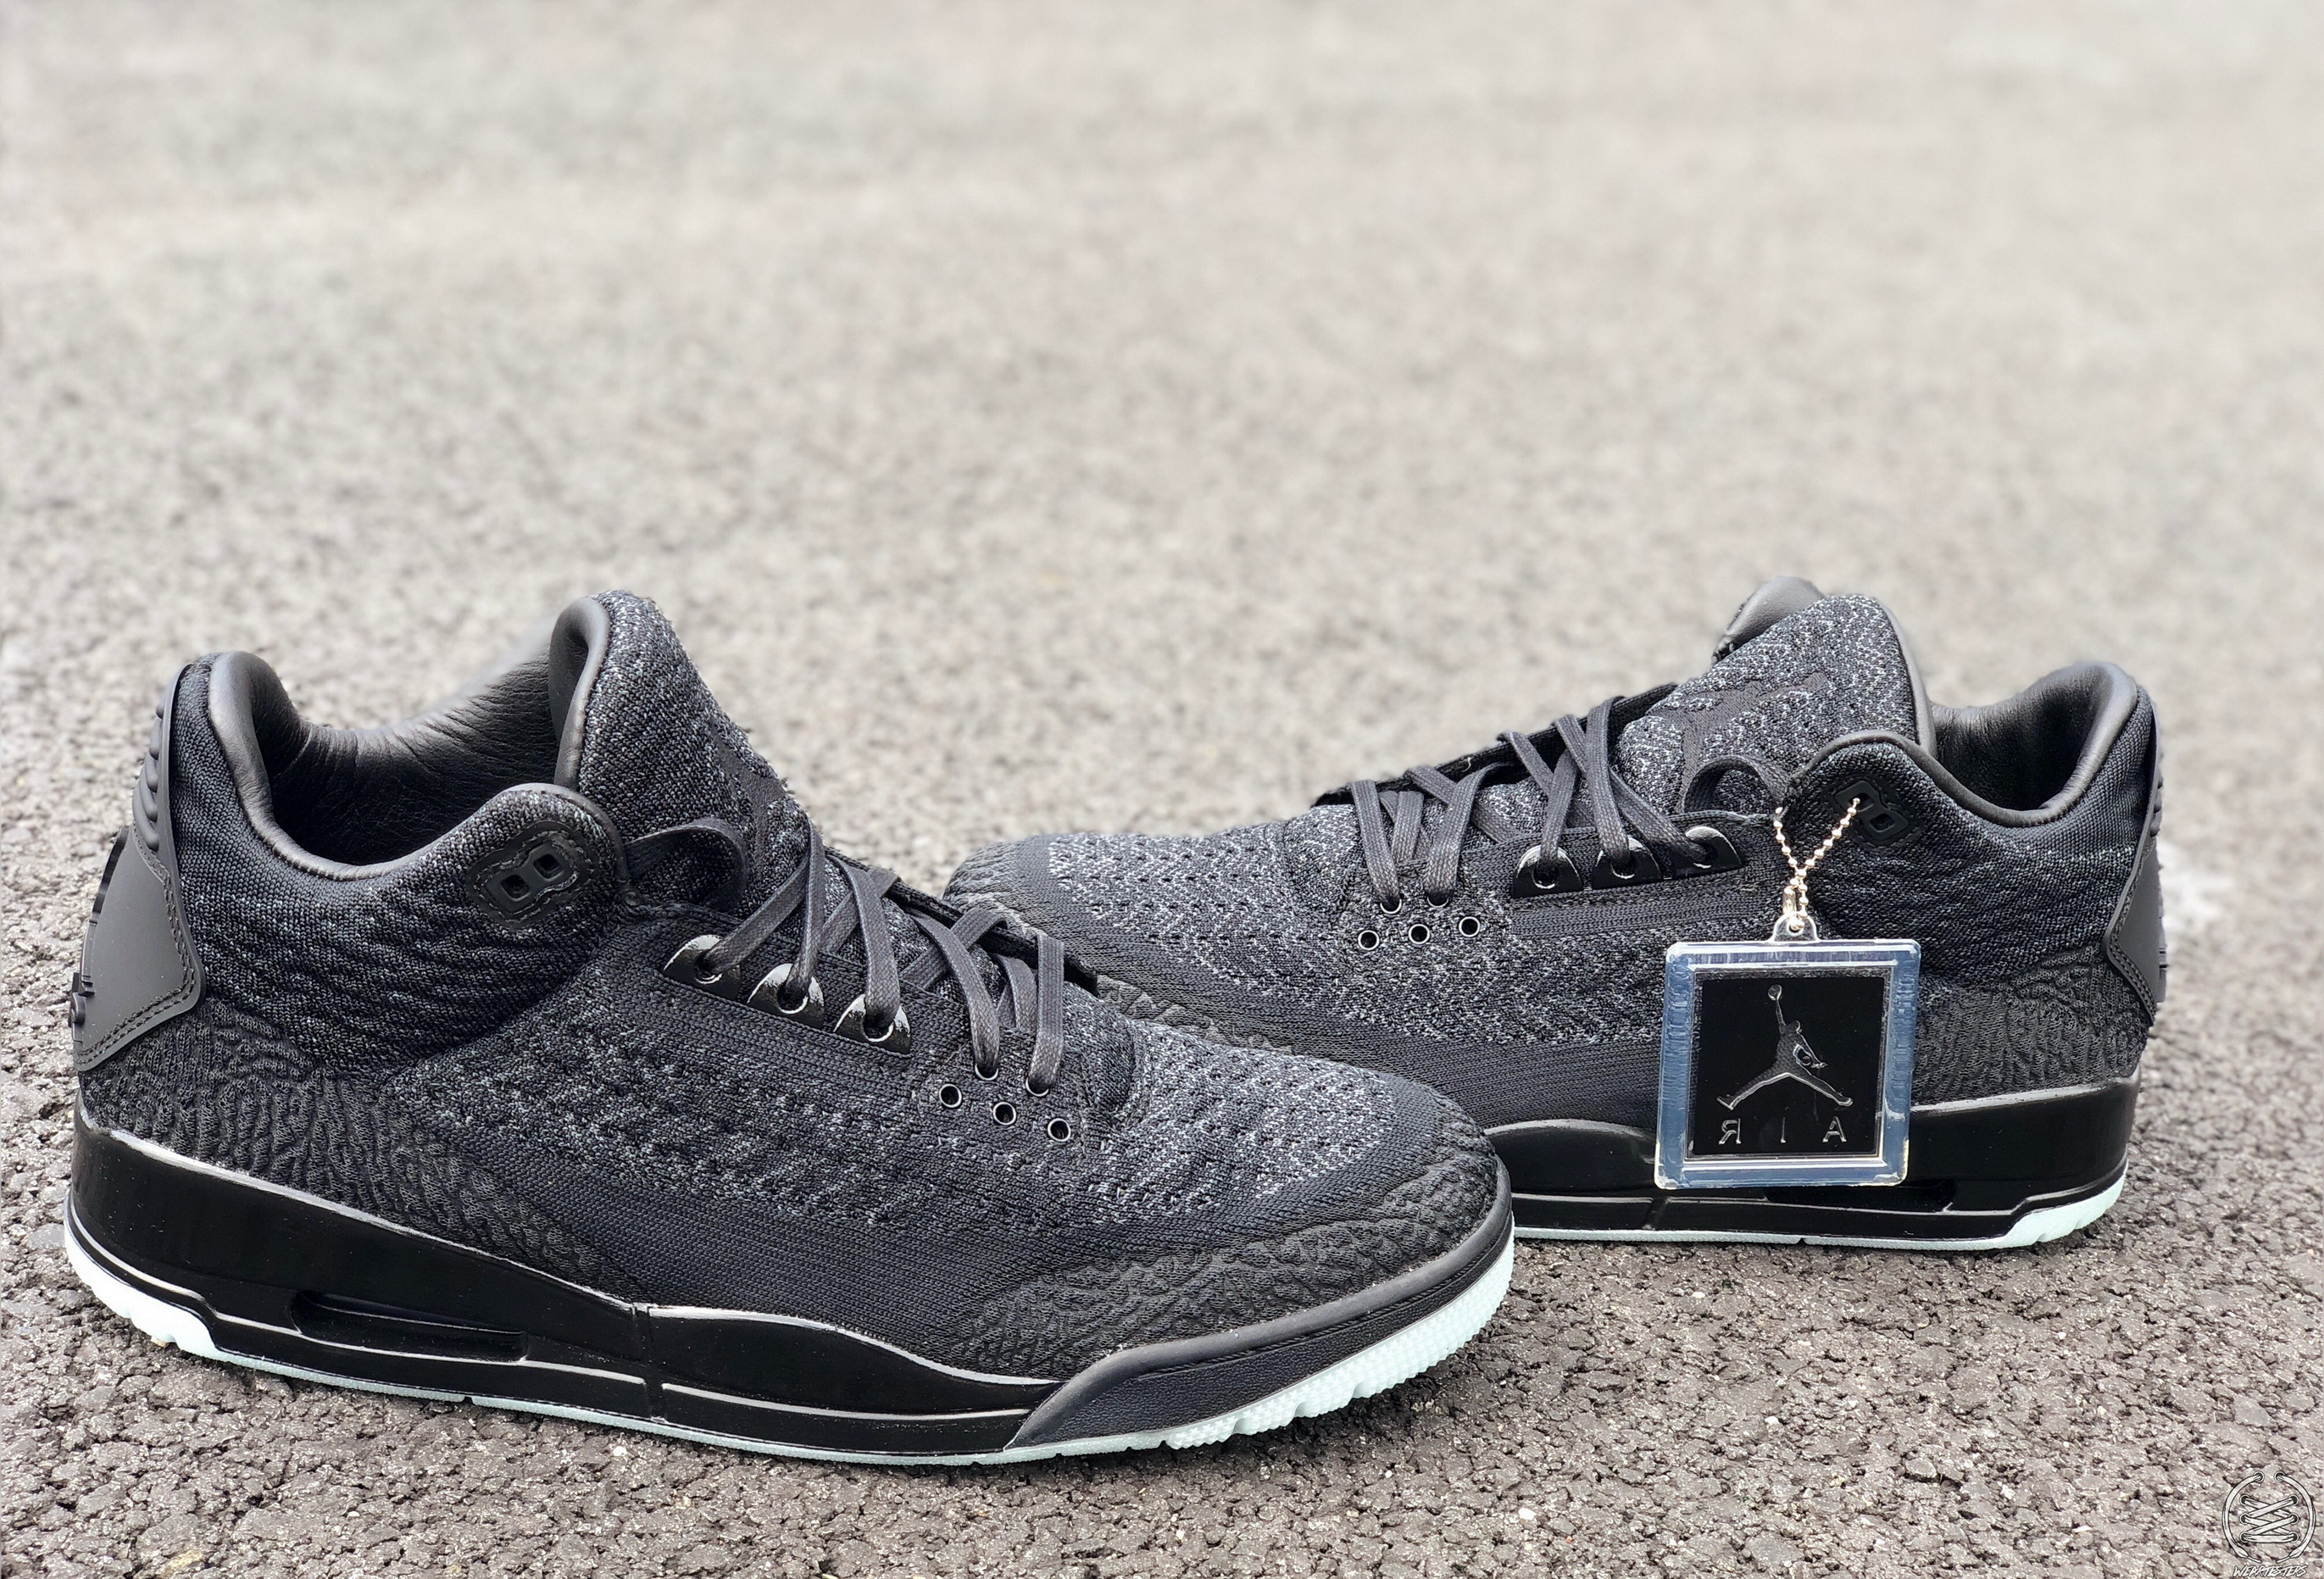 Air Jordan 3 Flyknit detailed look weartesters 6